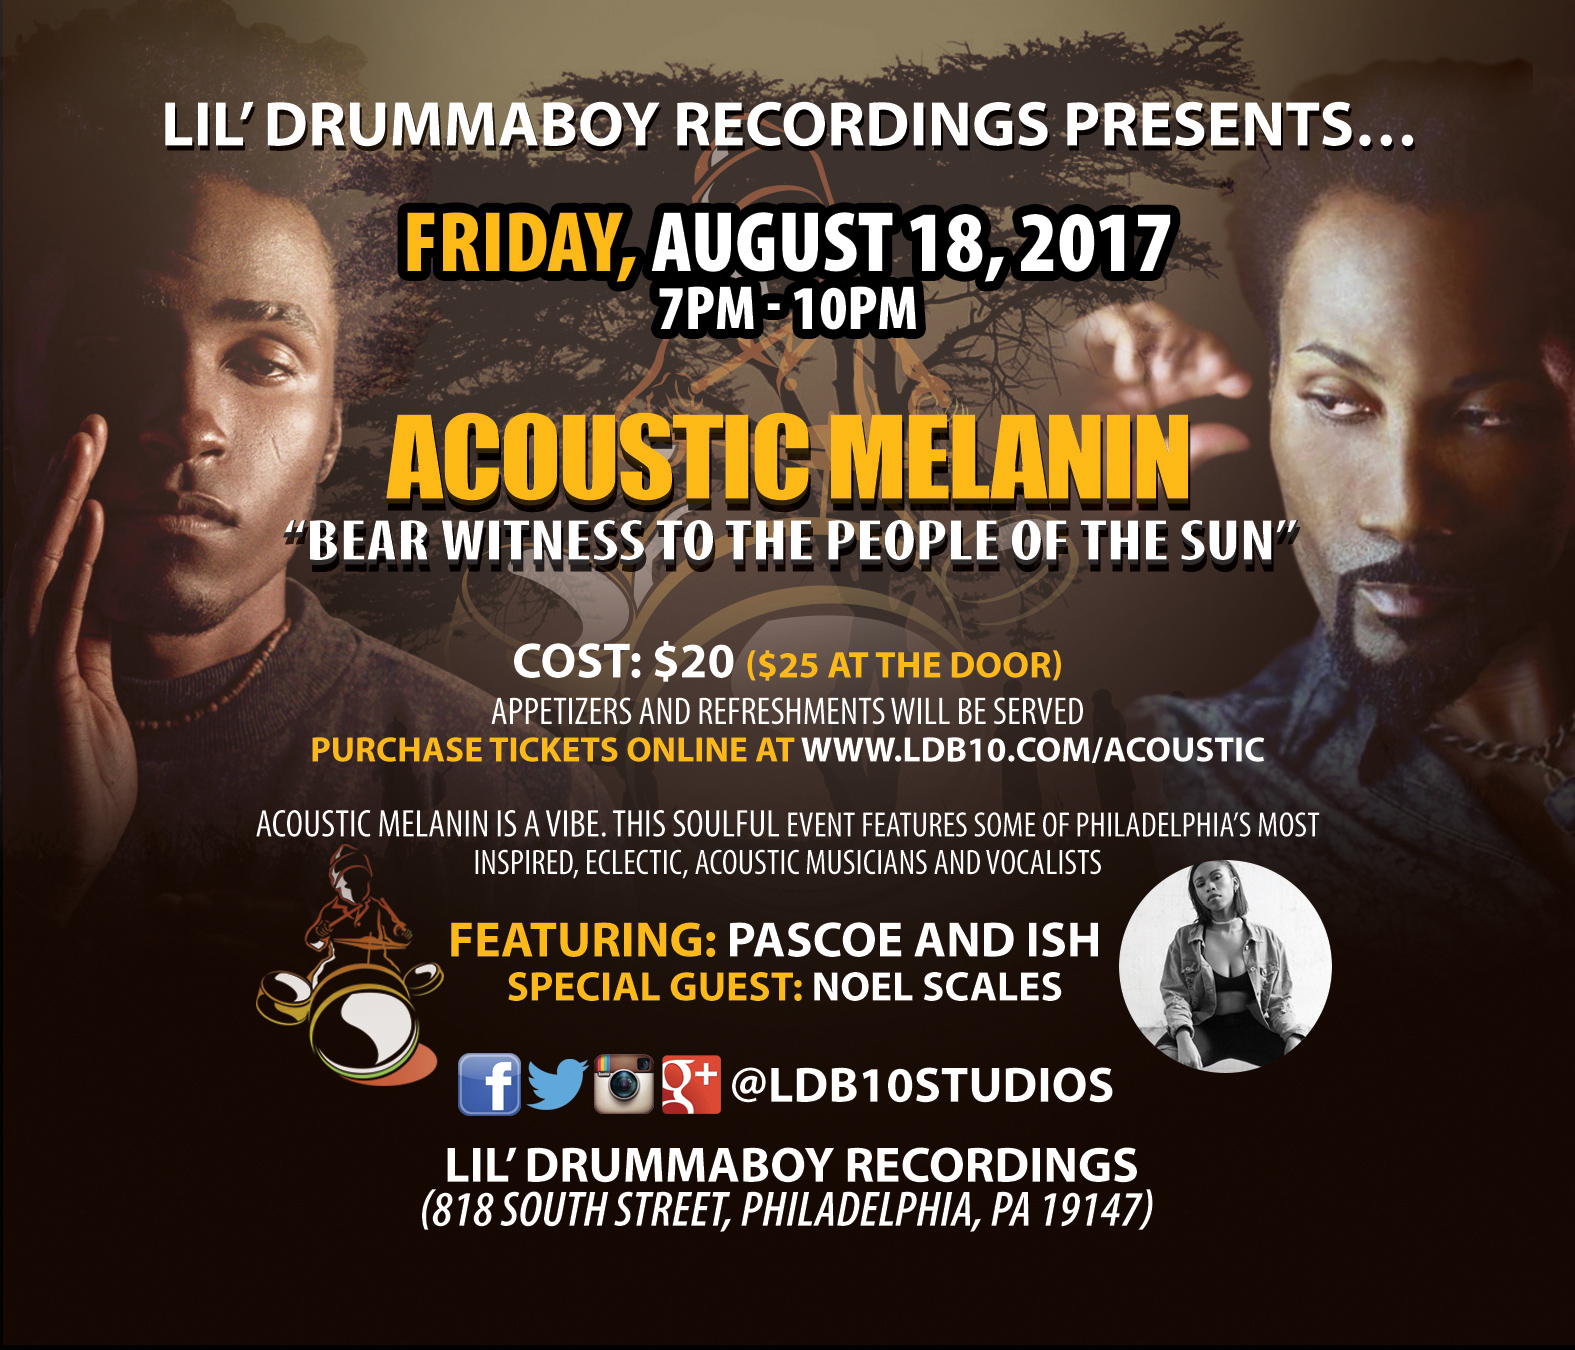 Acoustic Melanin - an intimate concert and networking event